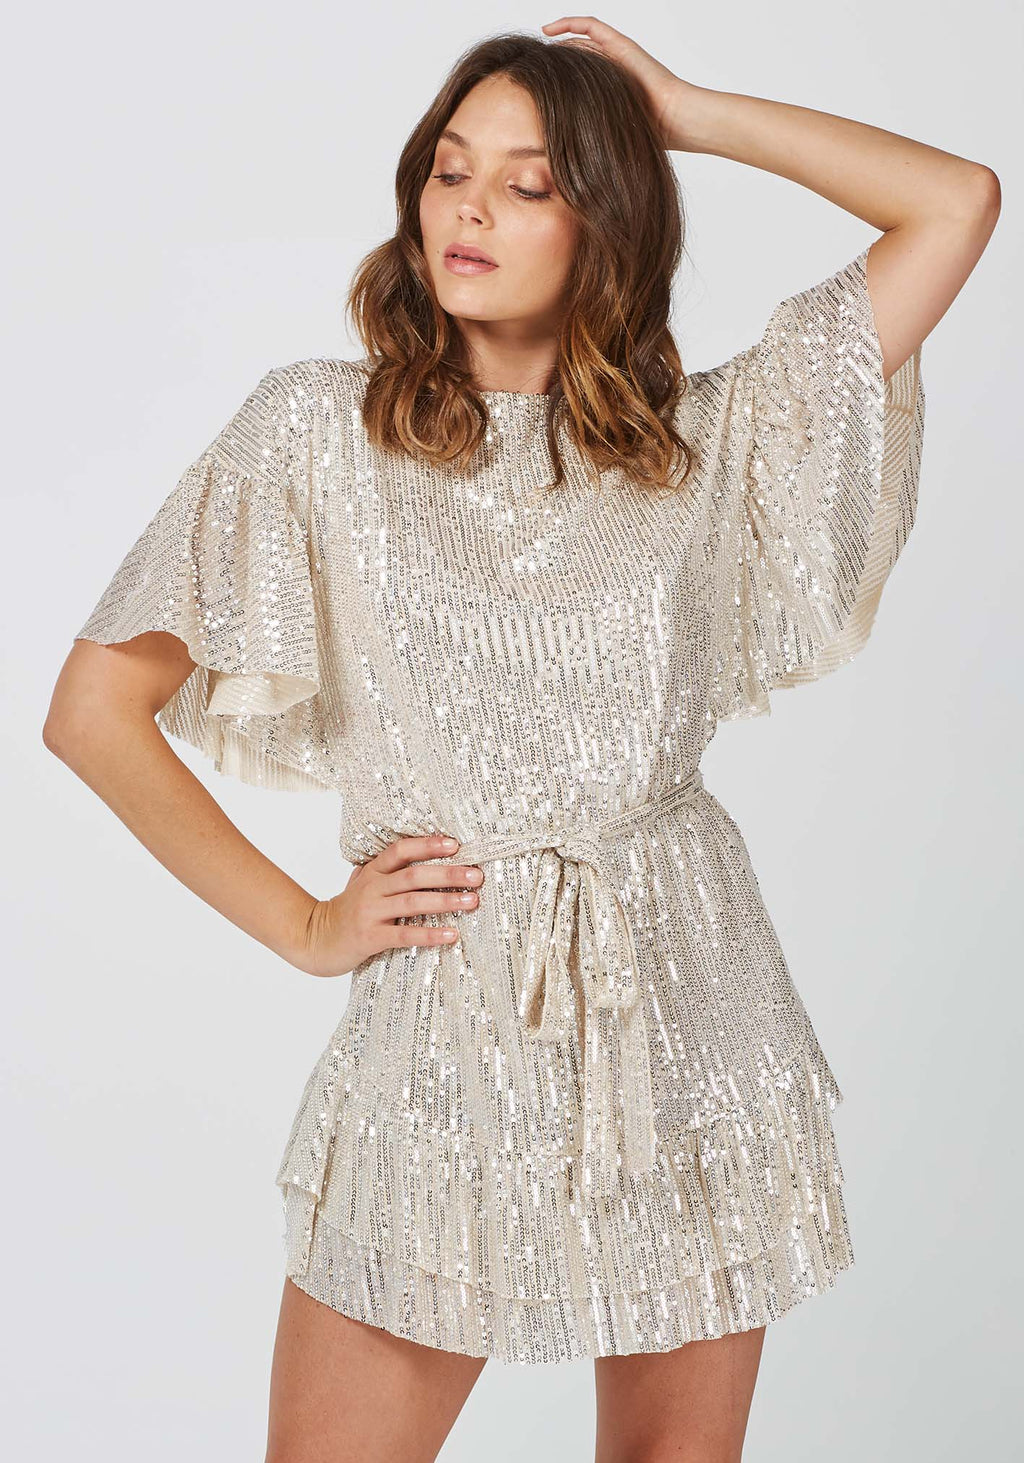 Hereafter Dress Sequin Mesh Party Dress by Three of Something Sydney Australia